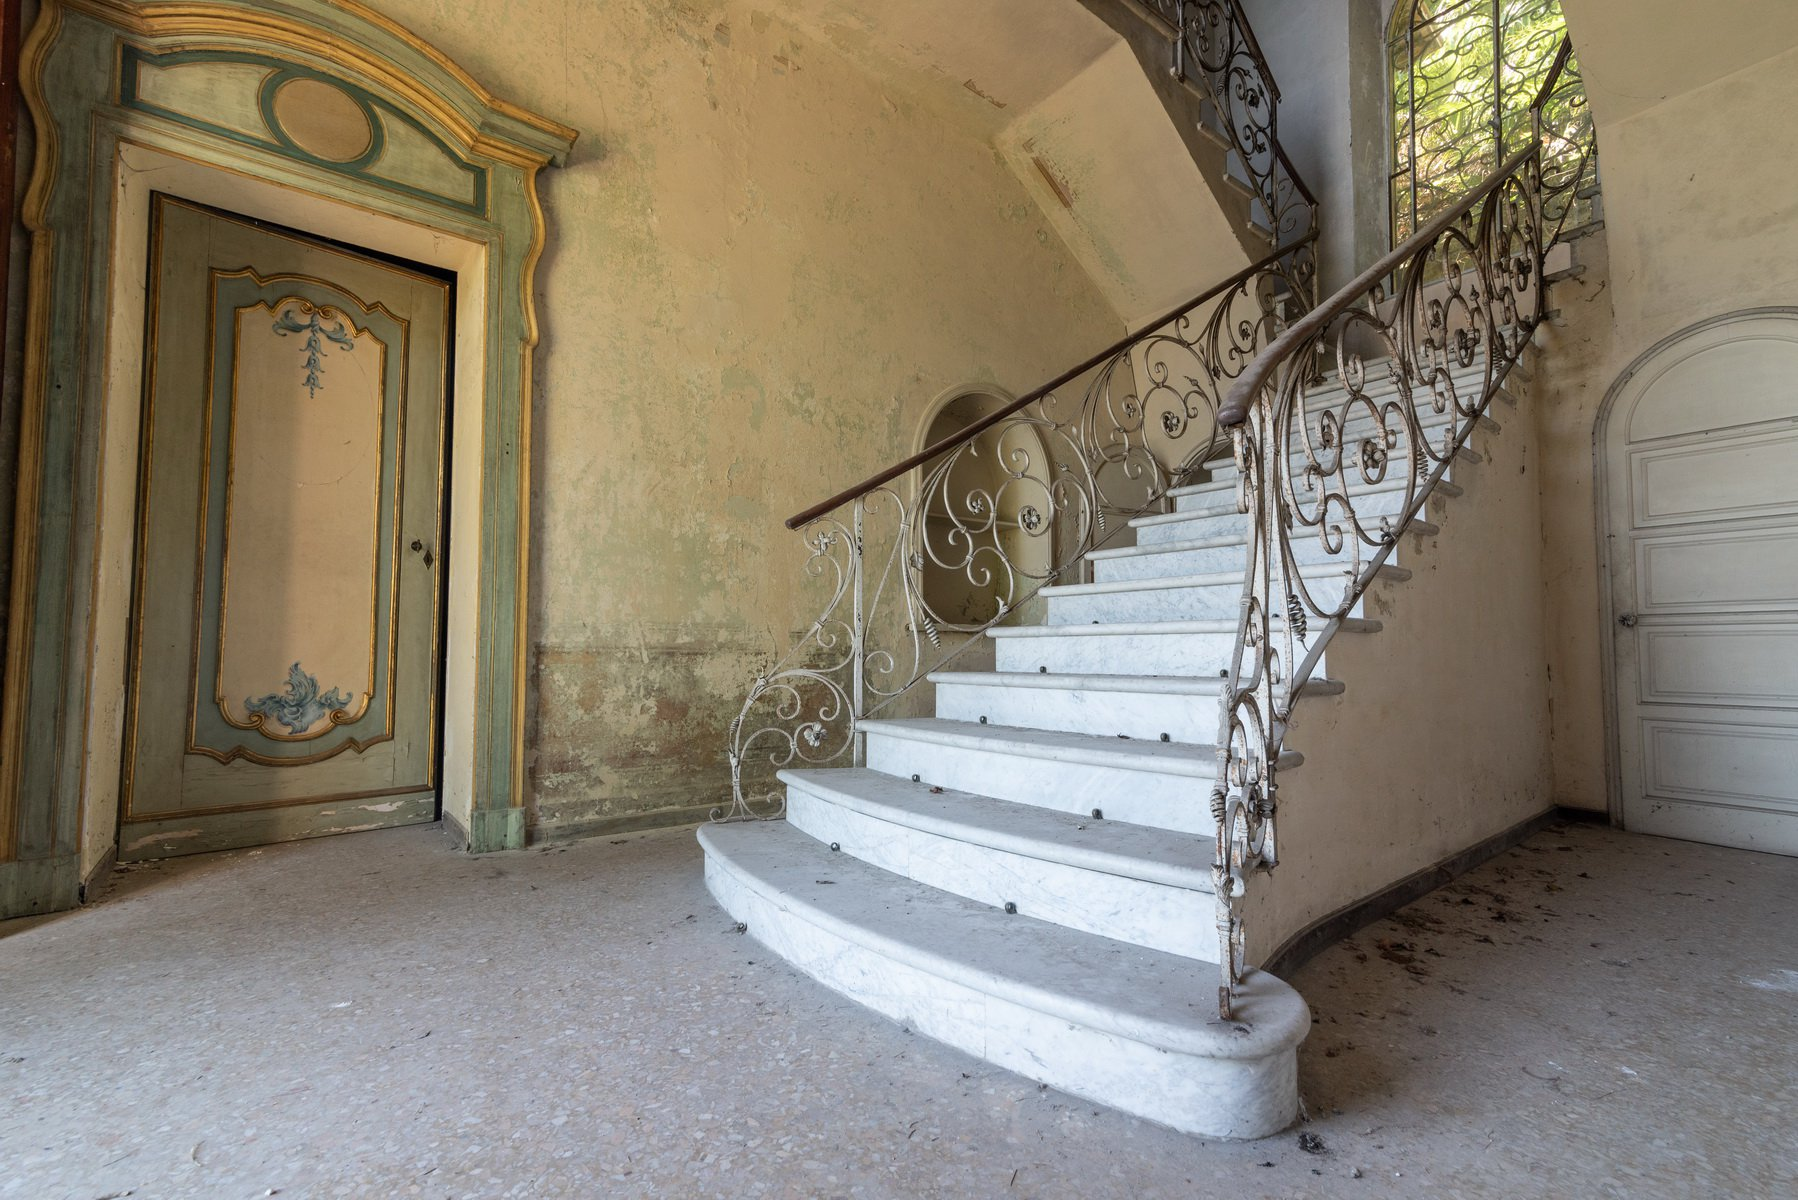 Castle for sale in Stresa on Lake Maggiore - stairs